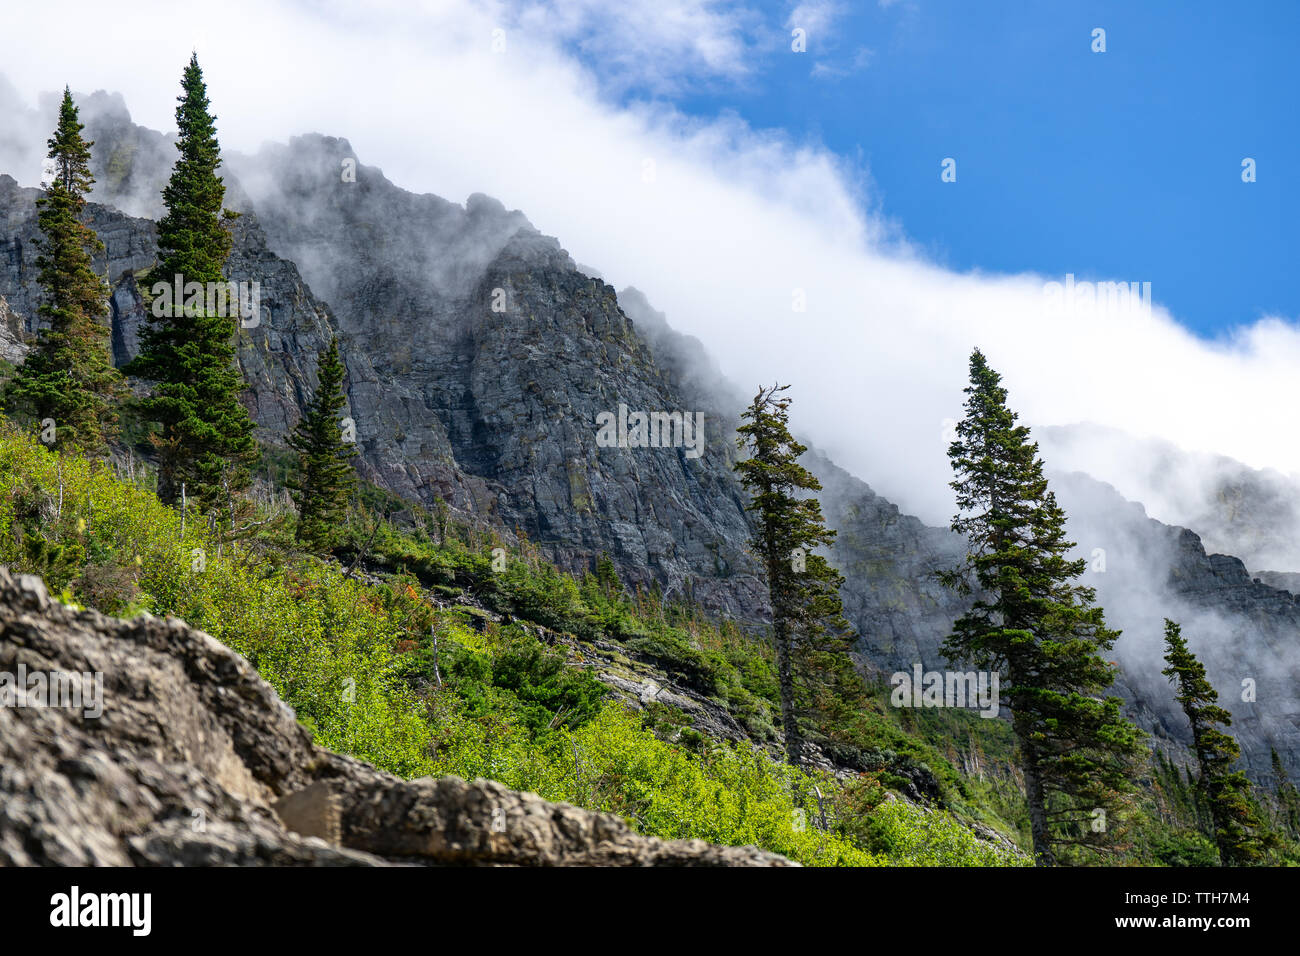 Clouds obscure mountain peak - Stock Image